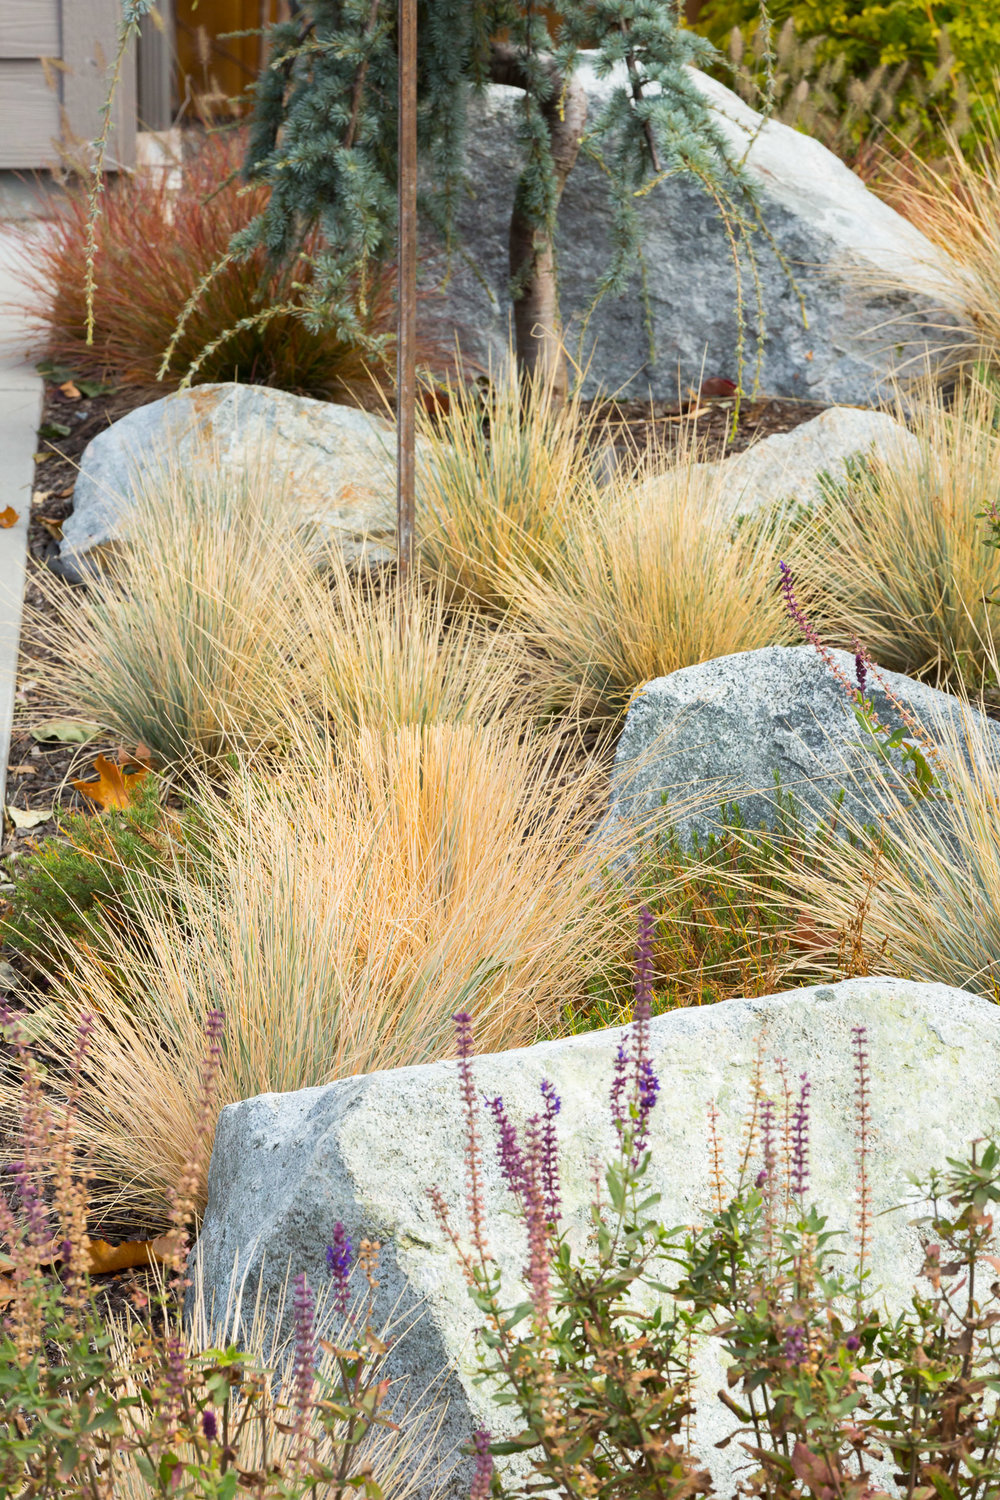 Drought-Tolerant Grass + Sedge Garden + Scattered Granite Boulders